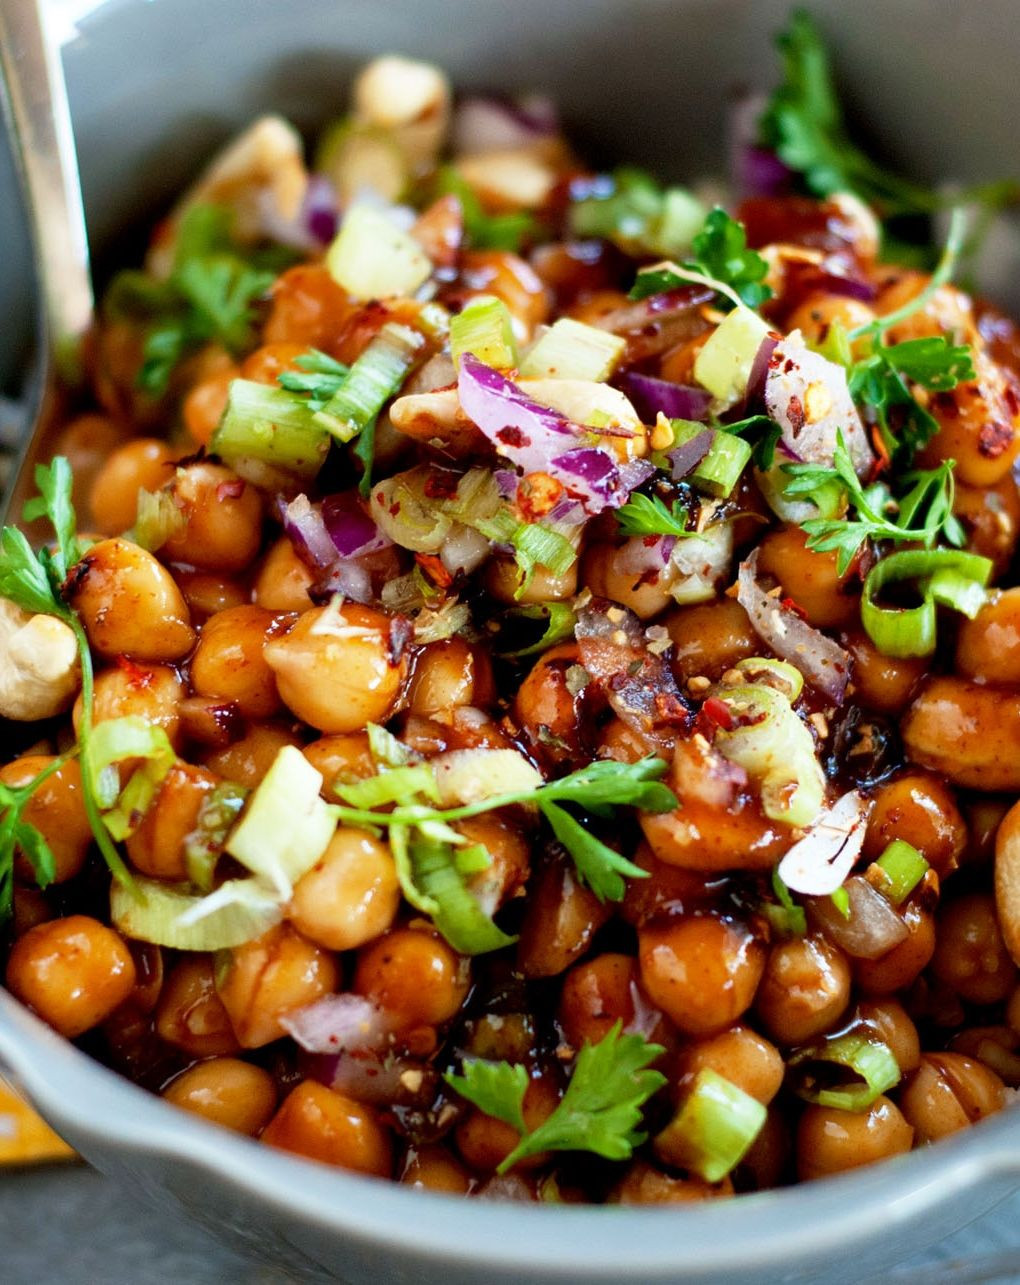 Garbanzo Beans Recipes Vegetarian  Swap the meat with flavorful chickpeas in this classic